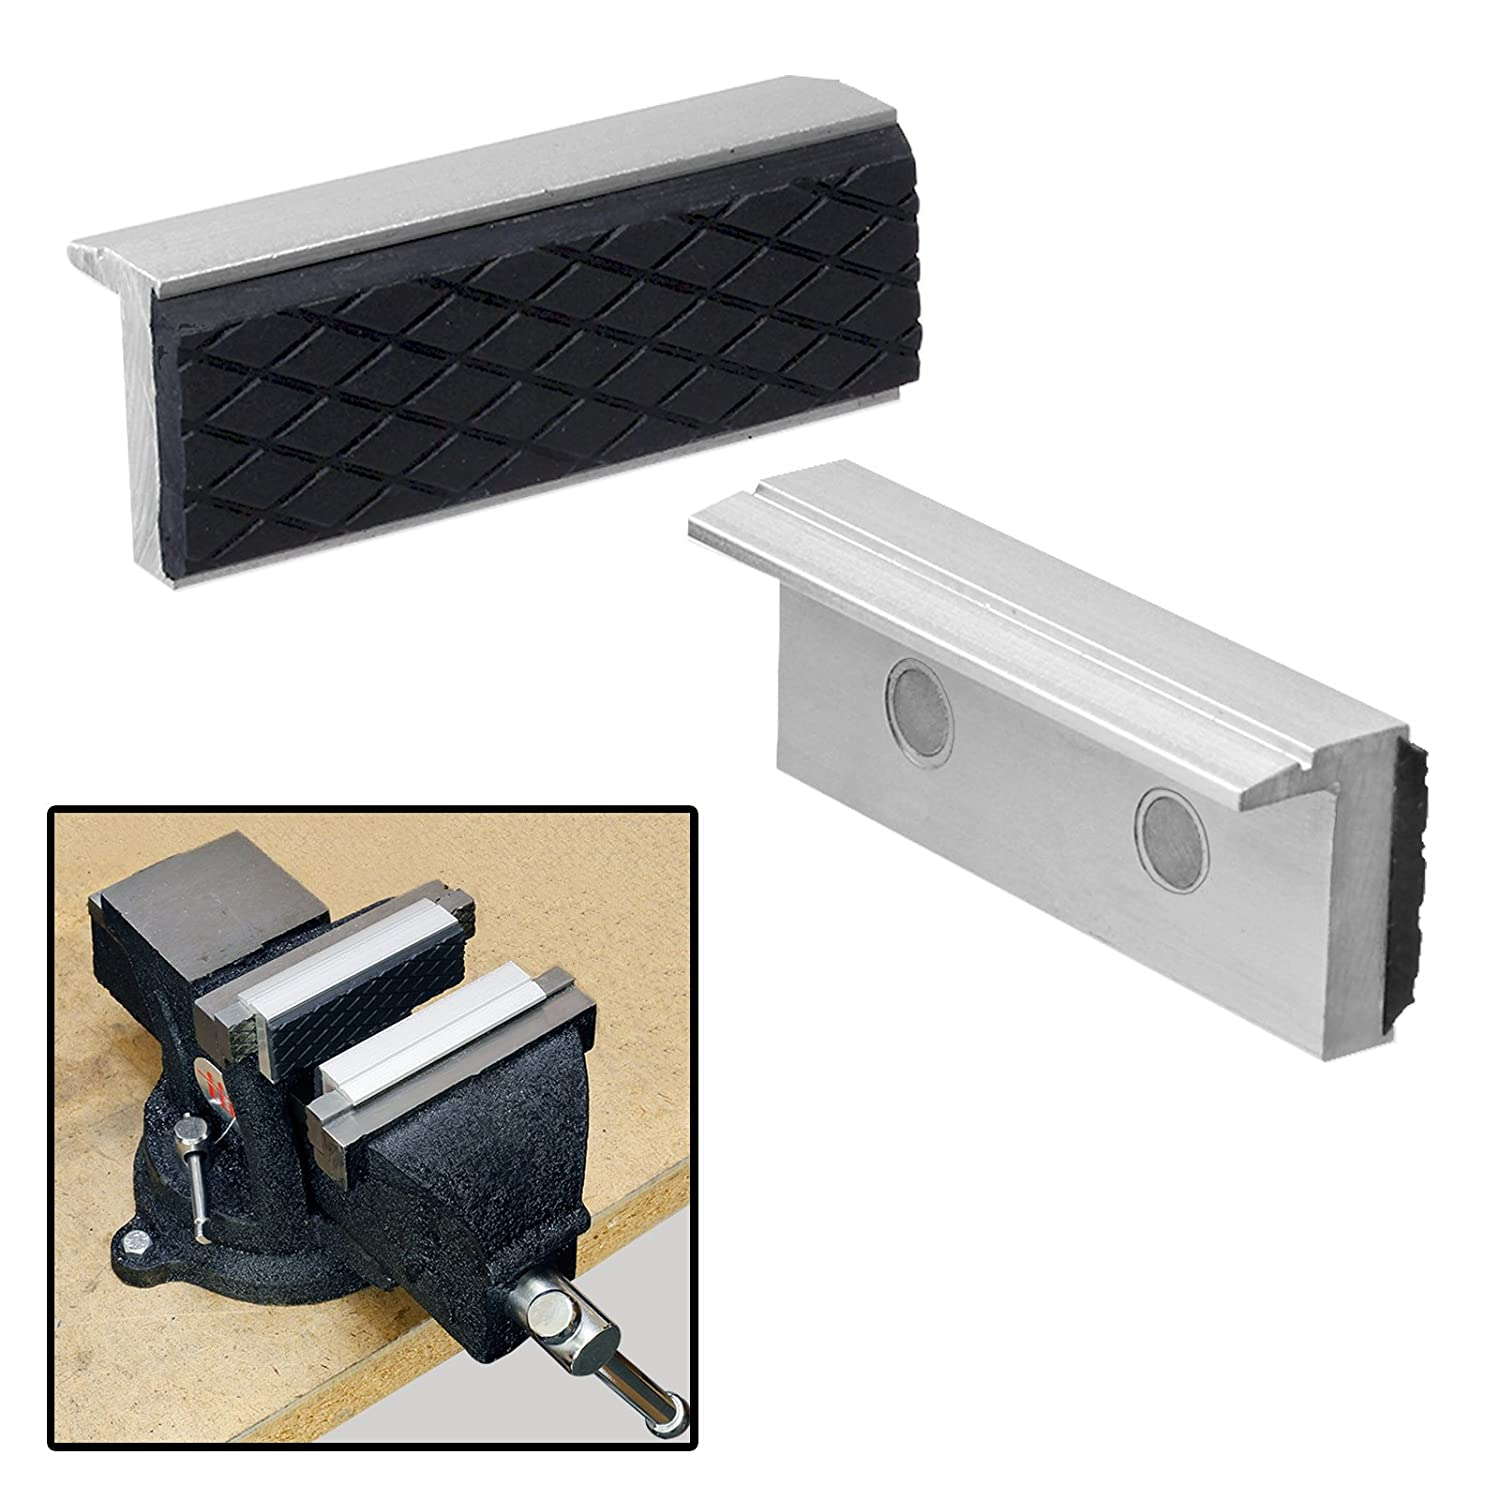 2pc 3' Magnetic Aluminum Vise Jaws for Clamps & Vises - Protect Your Workpieces! HK